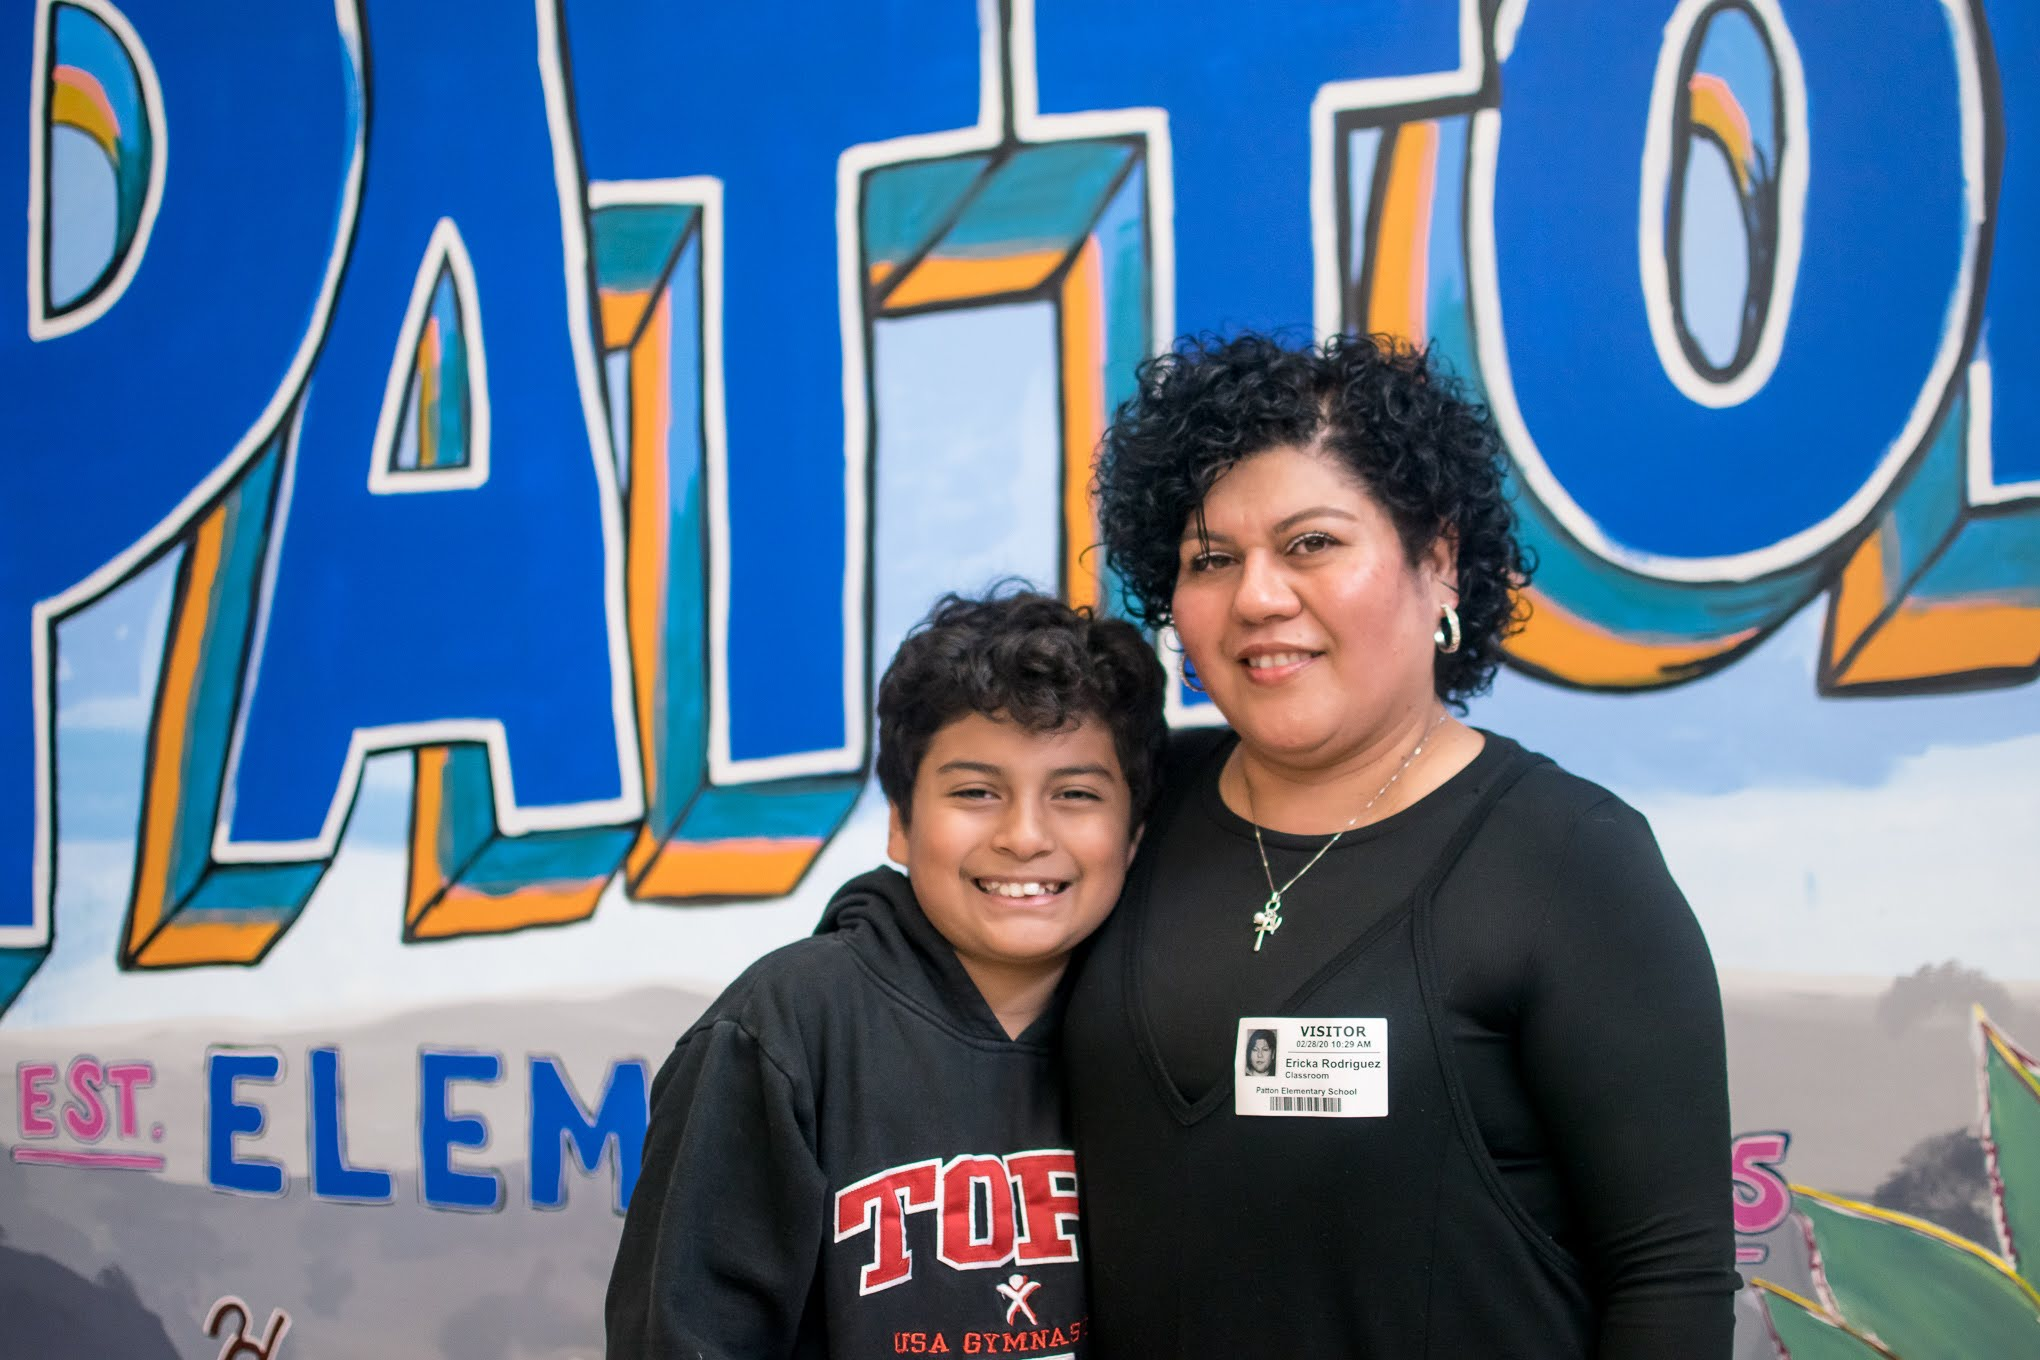 Caption: Joshua Rodriguez and his mother at Patton Elementary School, Credit: Danielle Warner